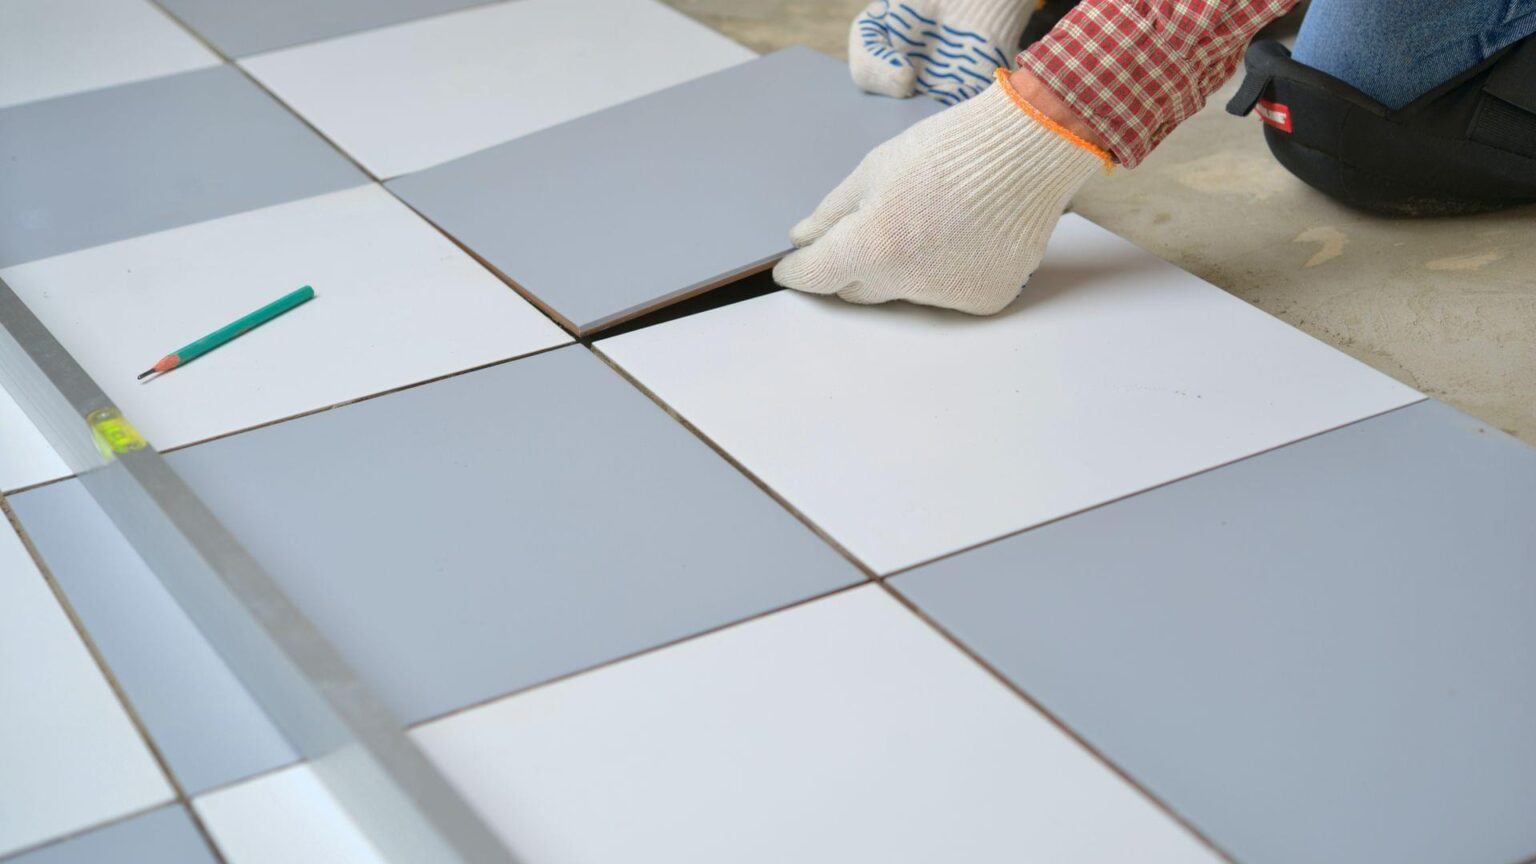 tiling services maroubra tiling services coogee